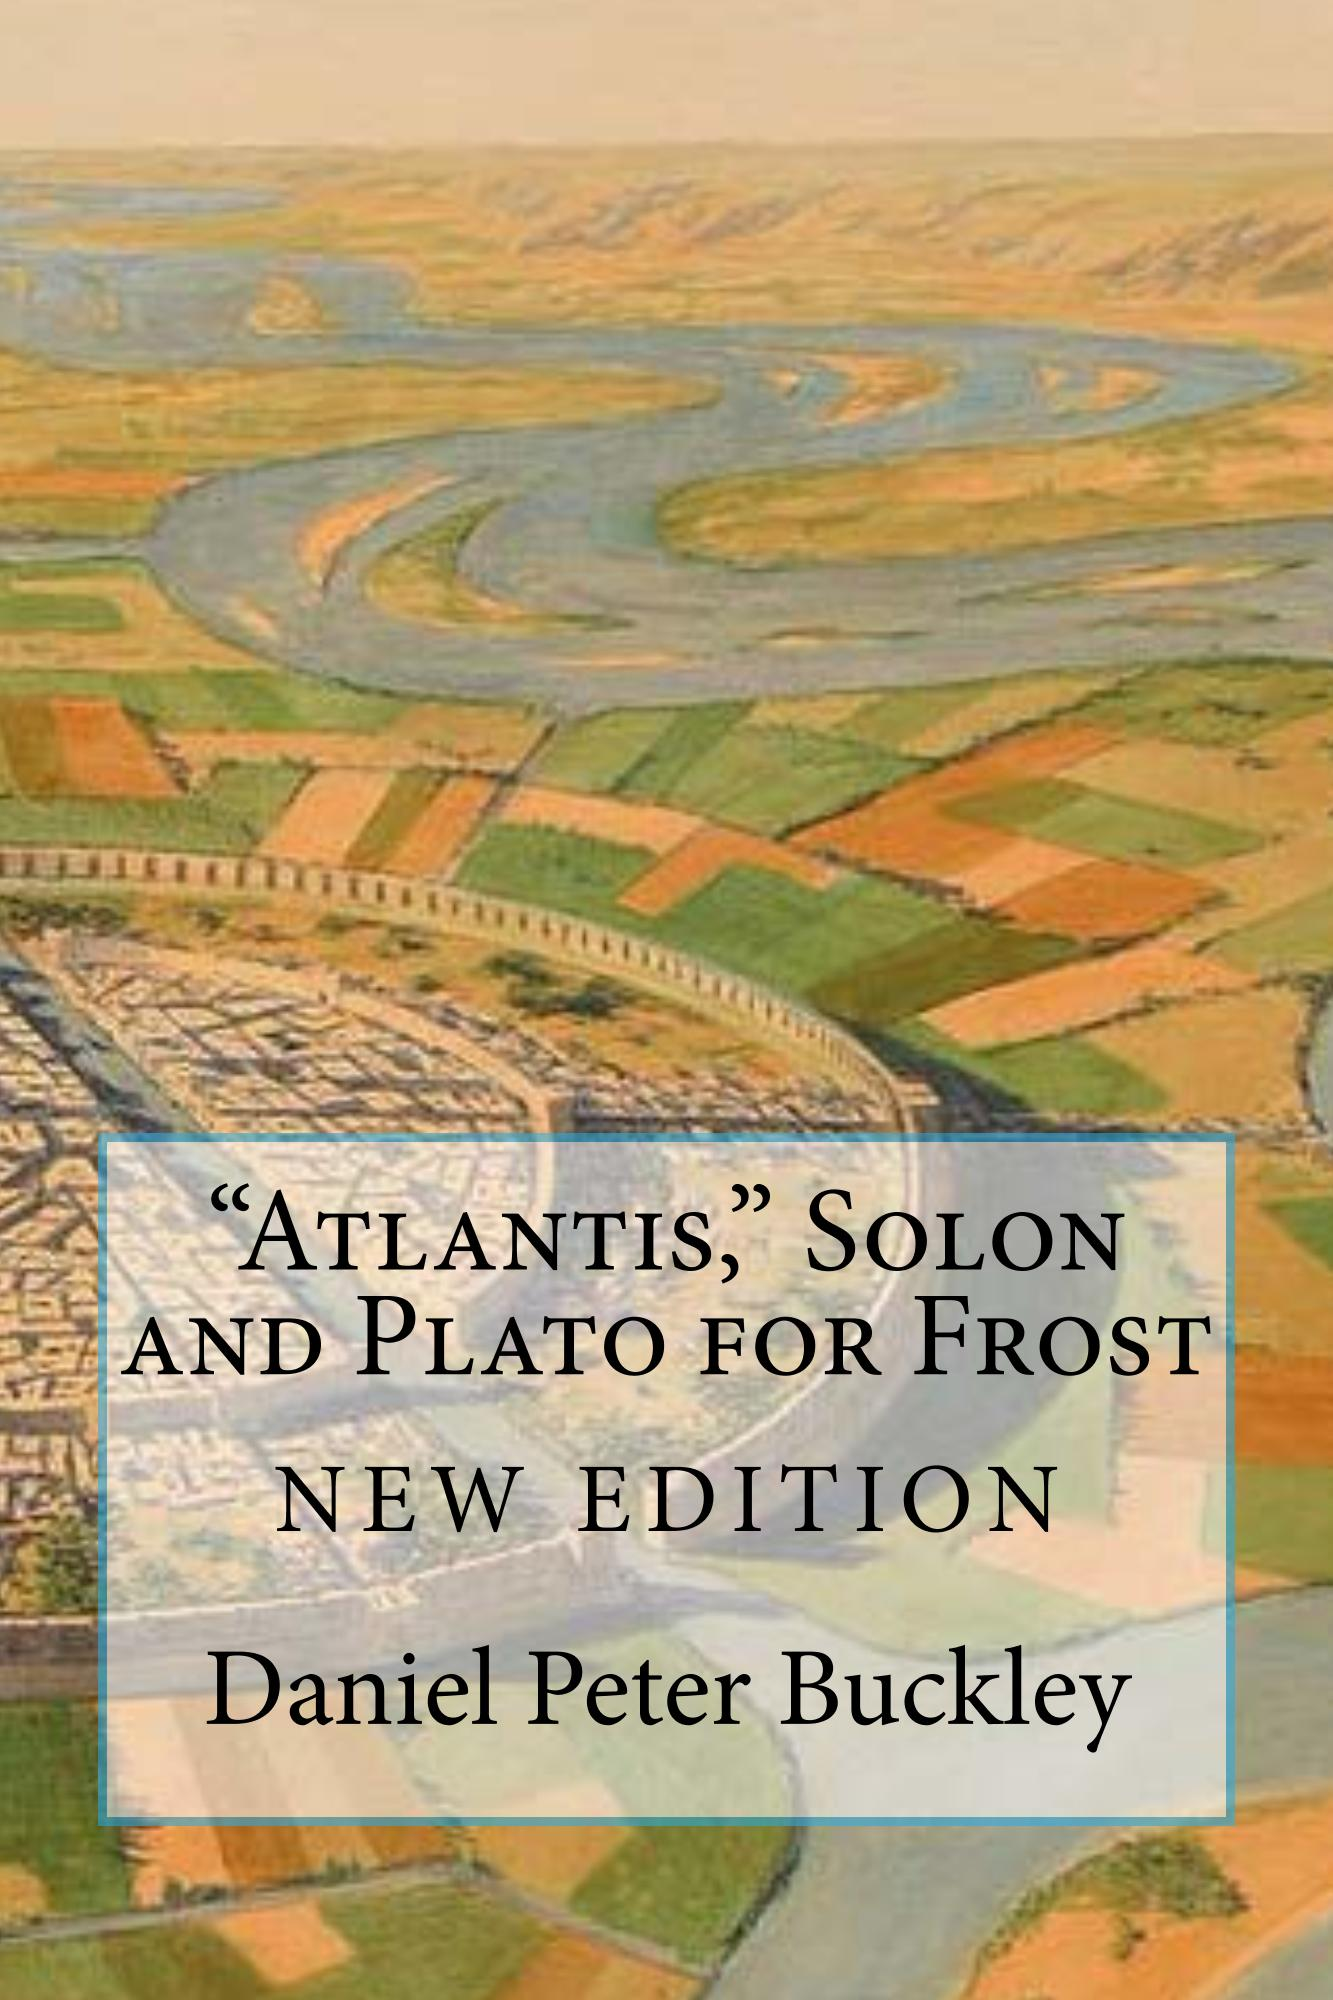 Atlantis solon and plato for frostgoodreads book winners atlantis solon and plato for frostgoodreads book winners thehistorywriter malvernweather Images